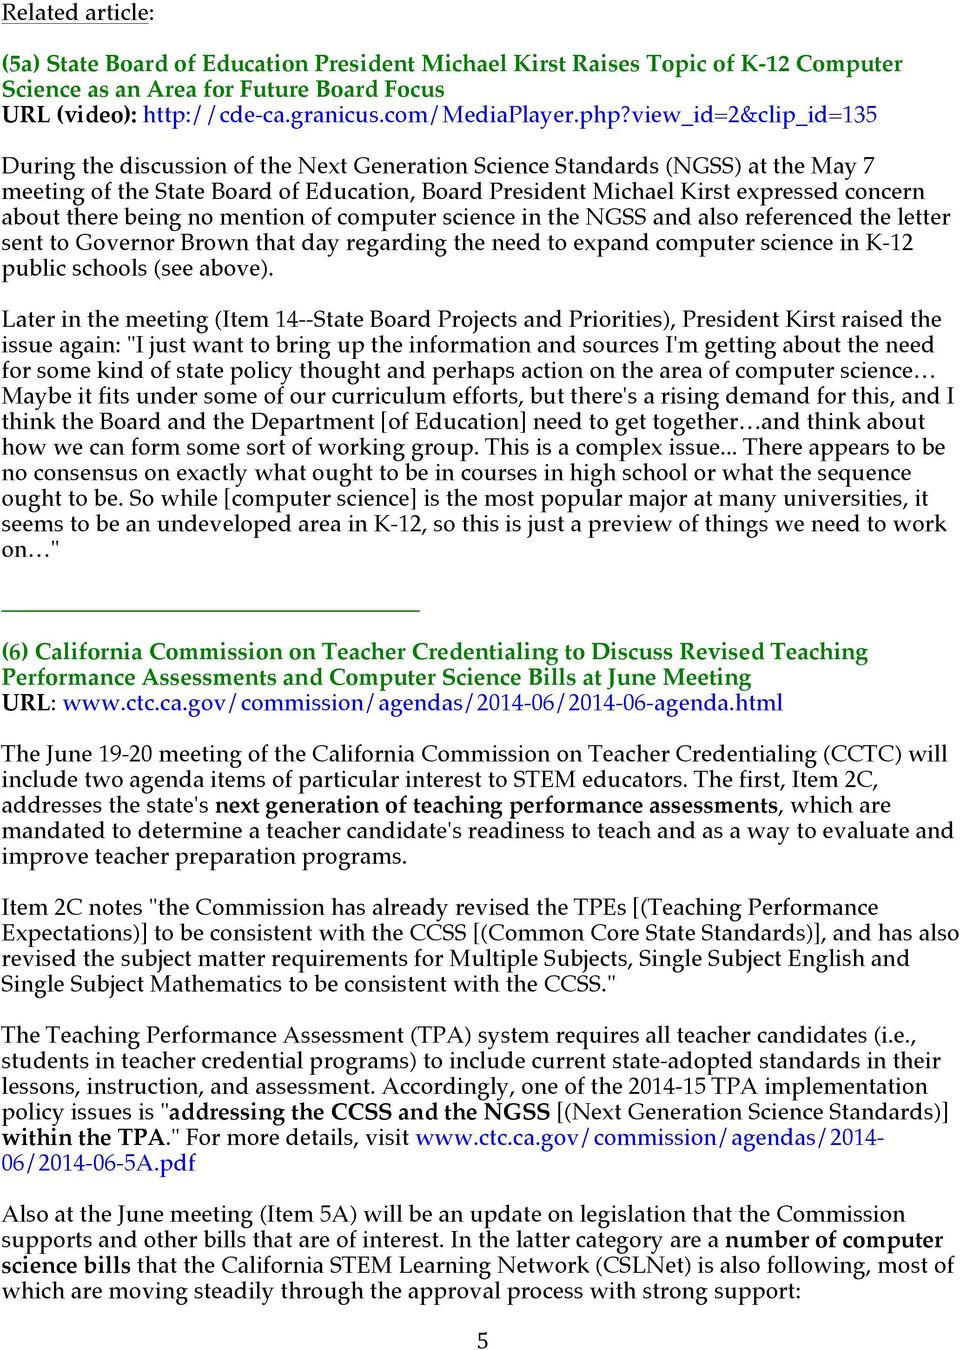 there being no mention of computer science in the NGSS and also referenced the letter sent to Governor Brown that day regarding the need to expand computer science in K-12 public schools (see above).